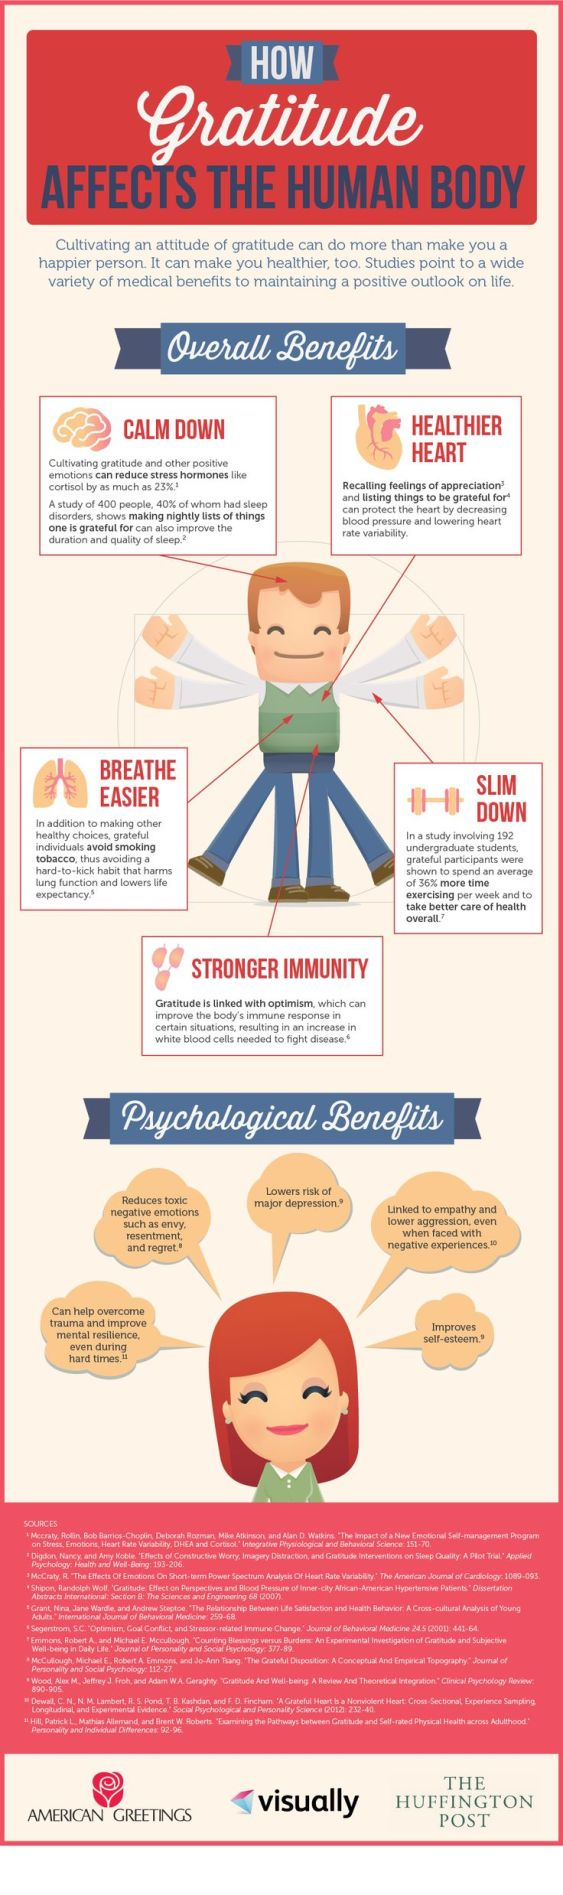 Here's How Gratitude Affects The Human Body: